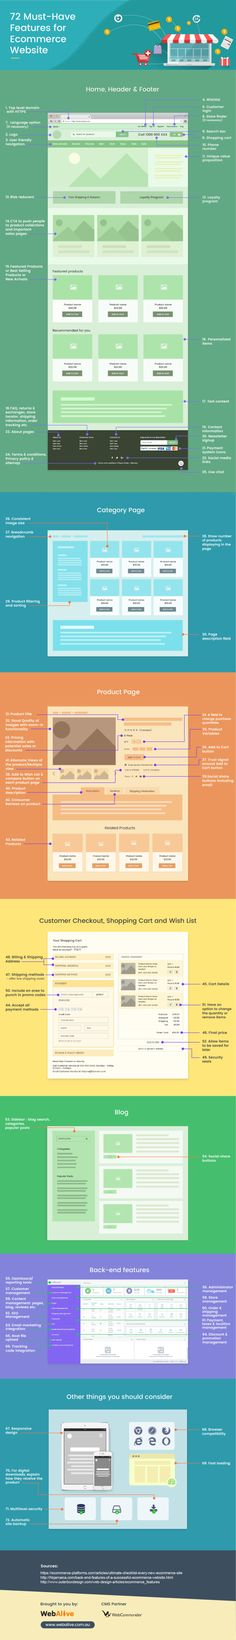 E-Commerce Websites: 72 Must-Have Features | Marketing Infographic